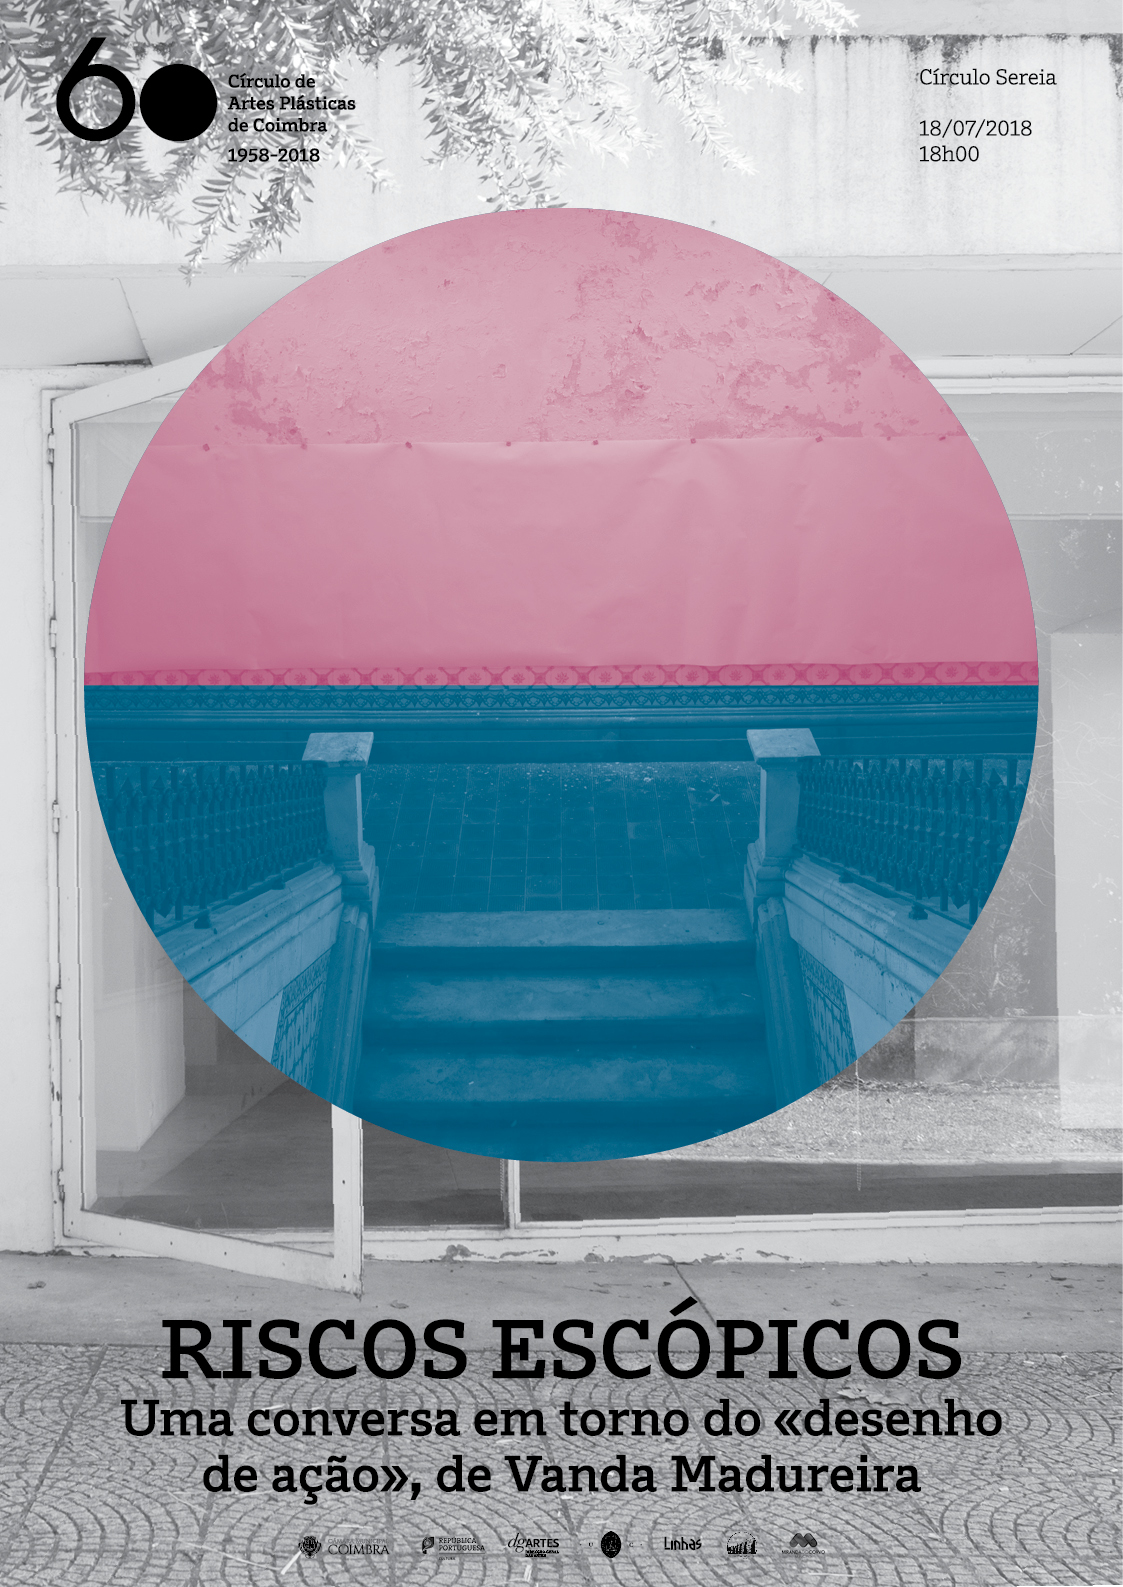 cartaz_CAPC_RiscosEscopicos_18Jul18